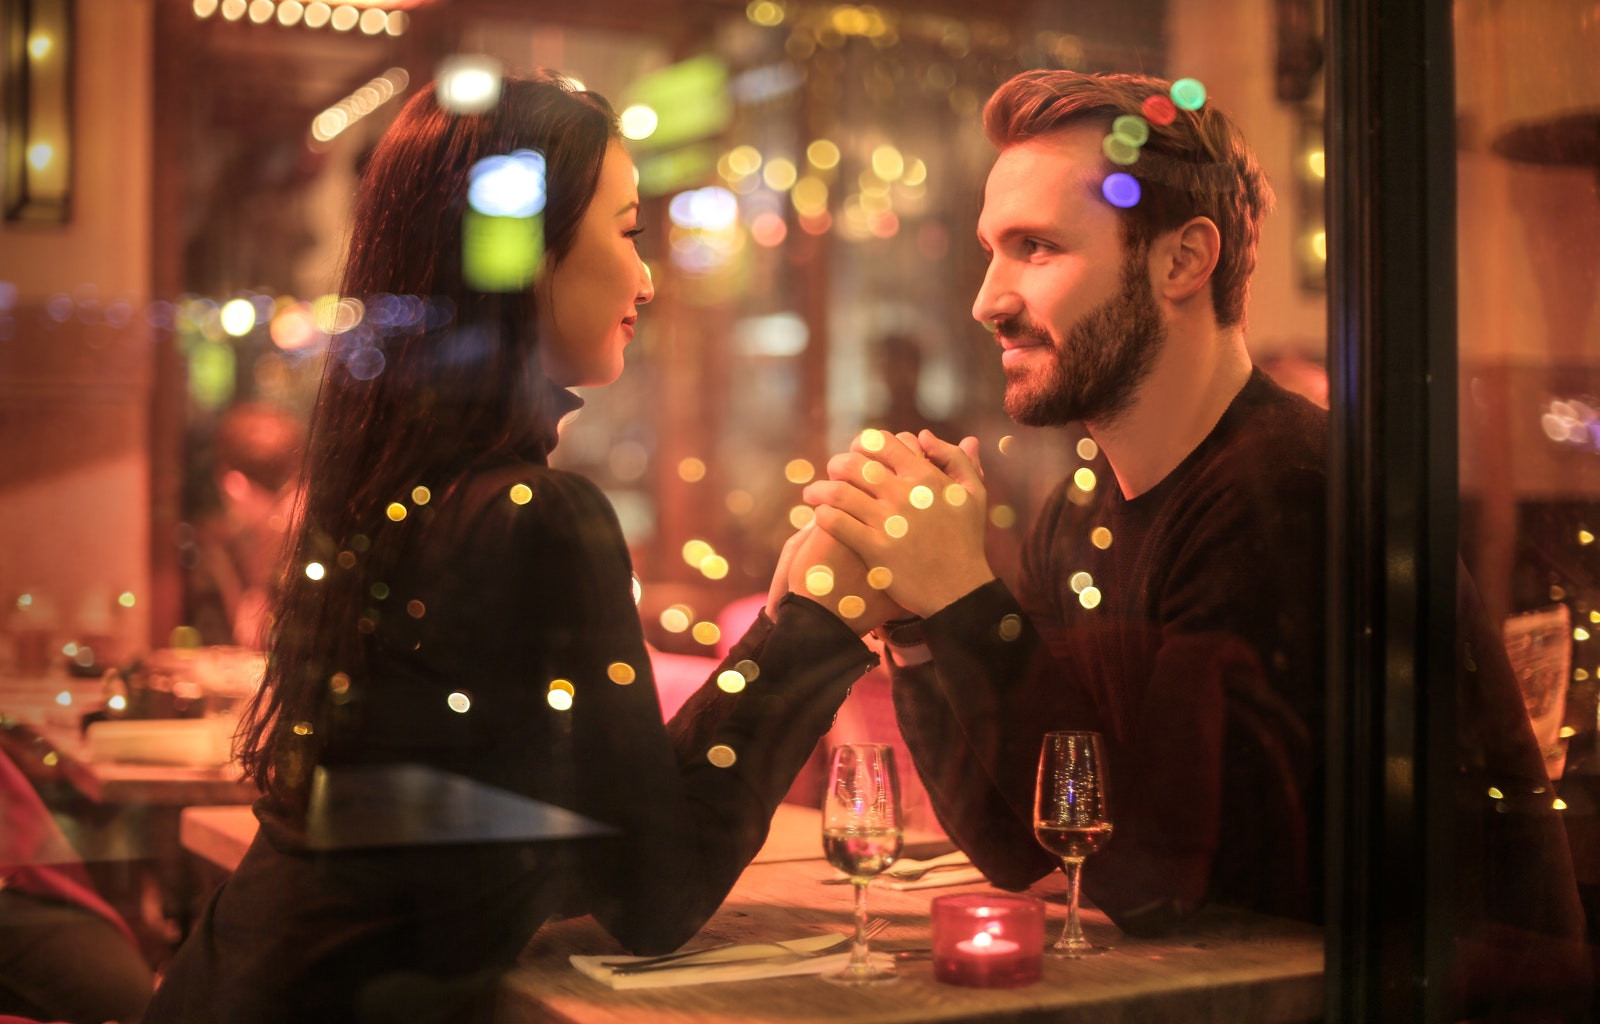 Couple On A Date Doesn't Get Into A Fight